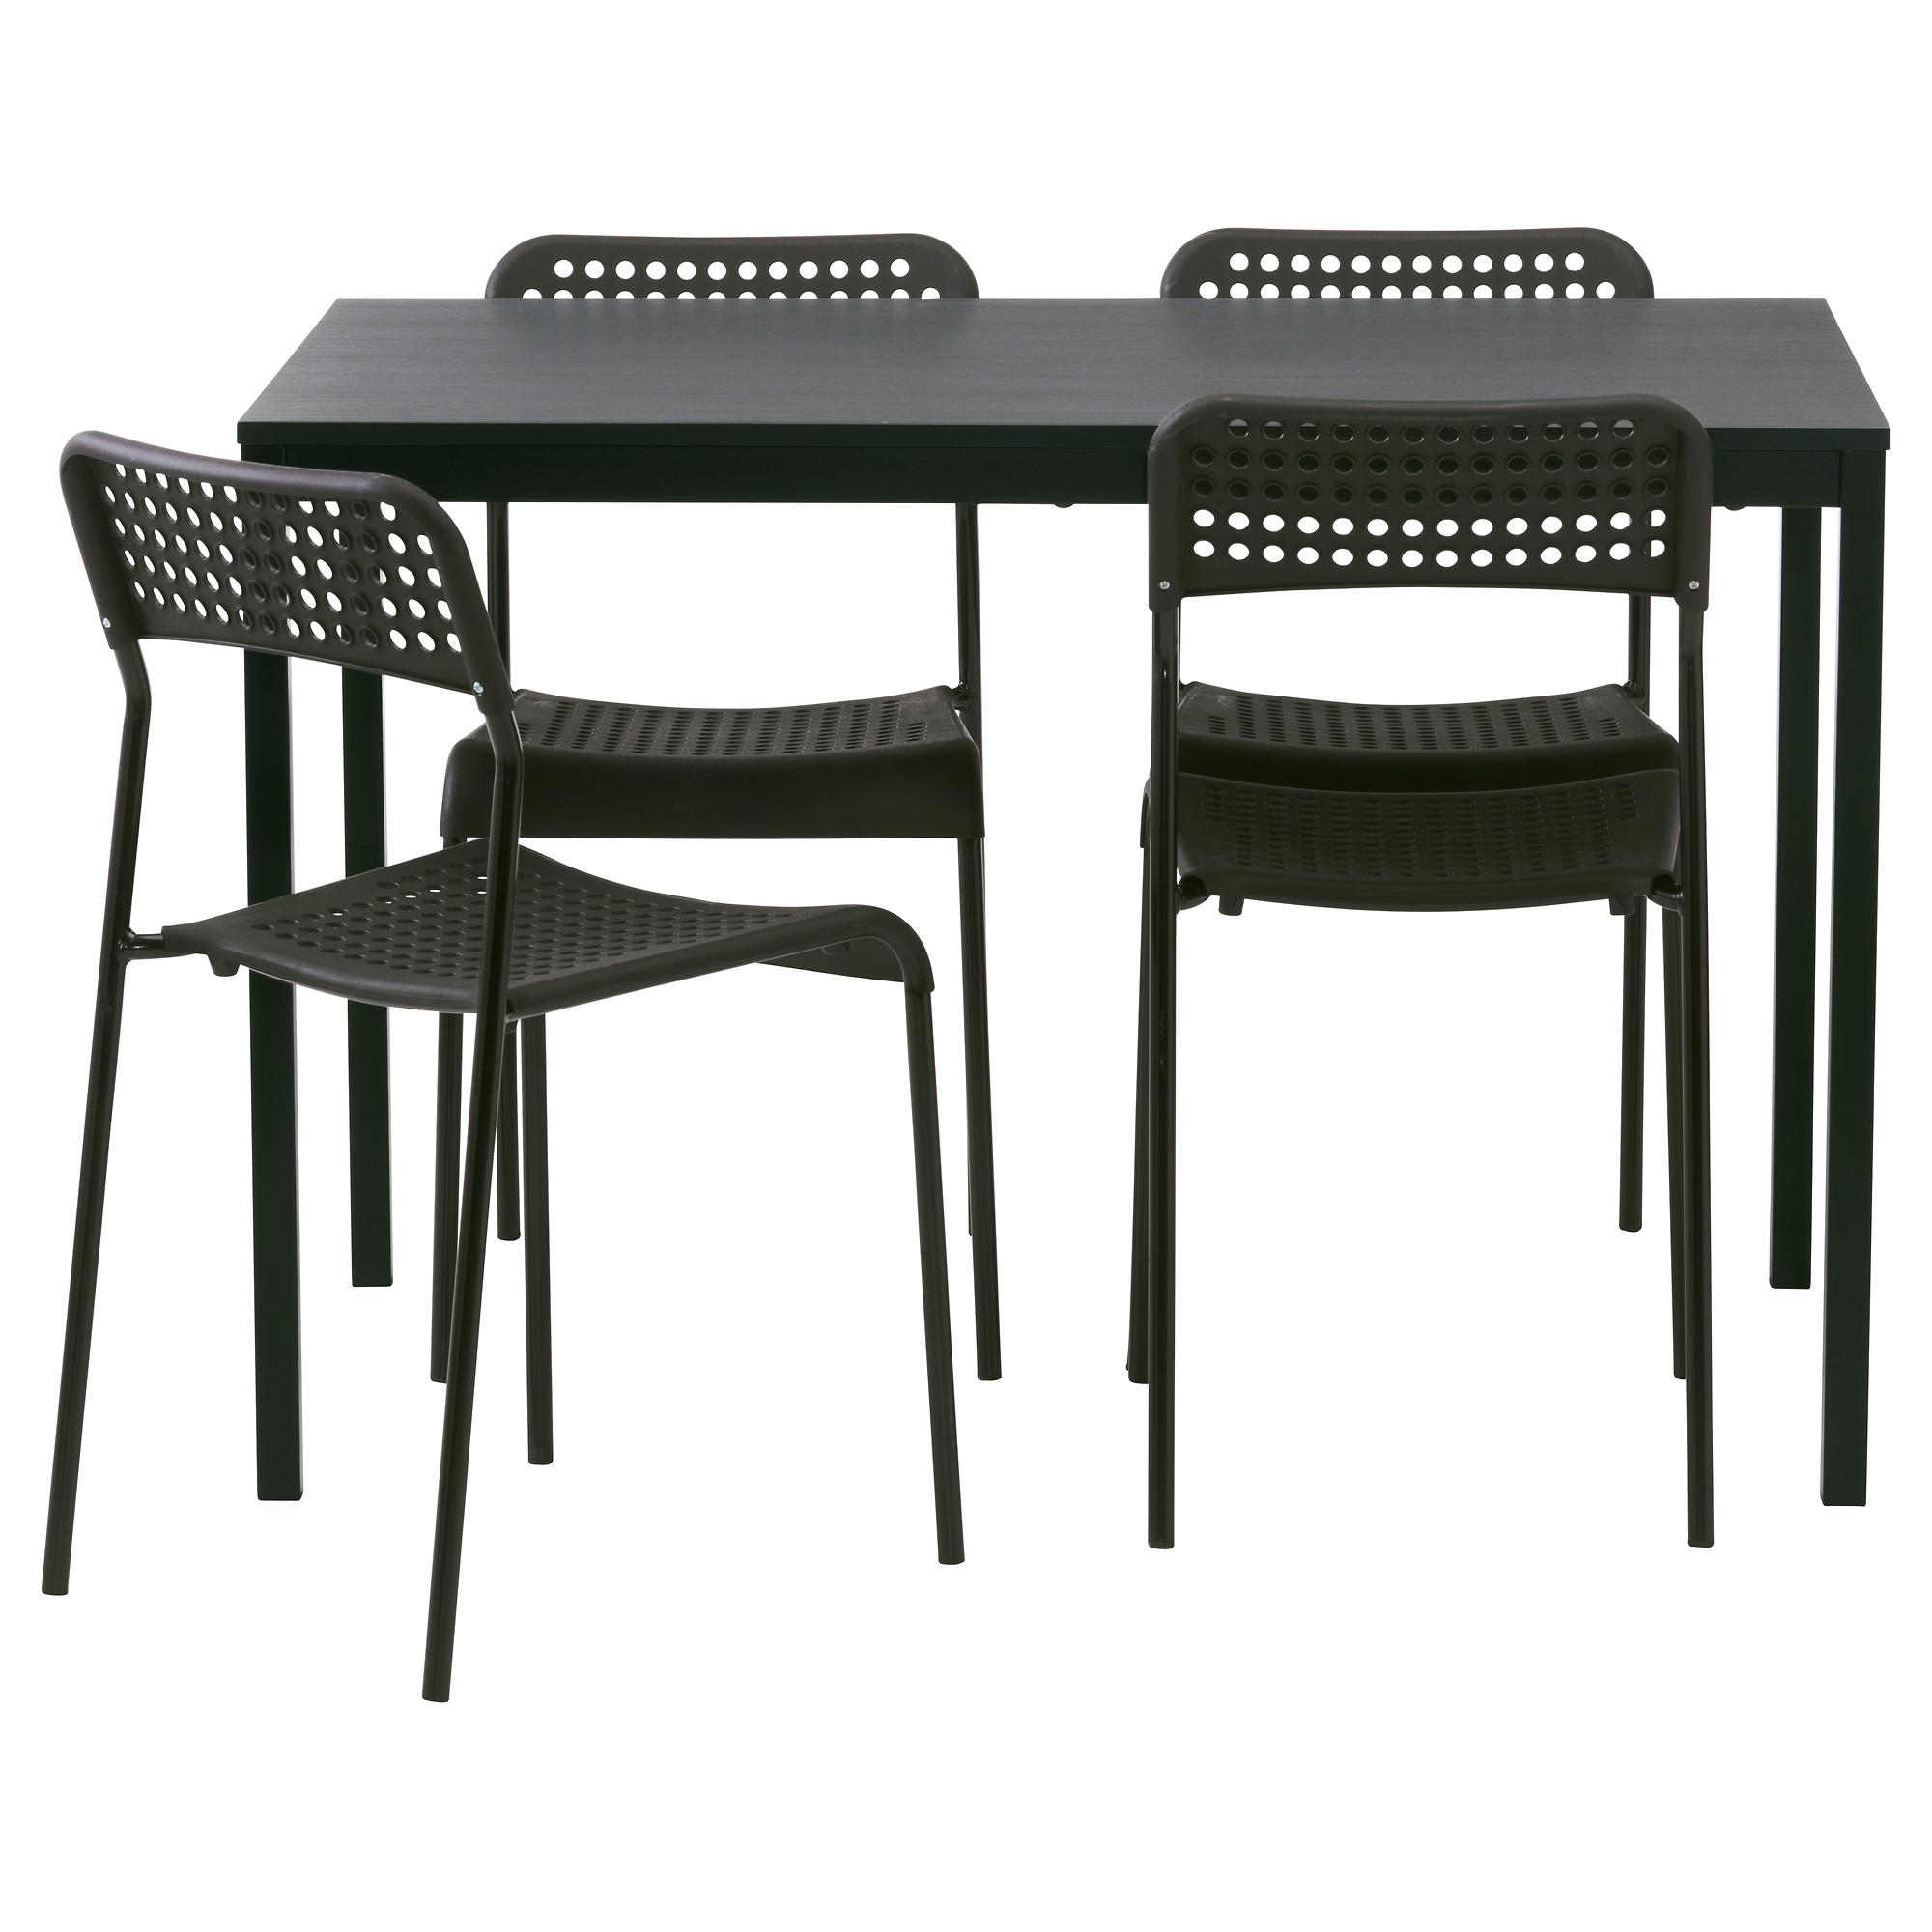 trend adde table and 4 chairs black length 43 14 - Dining Room Set Ikea